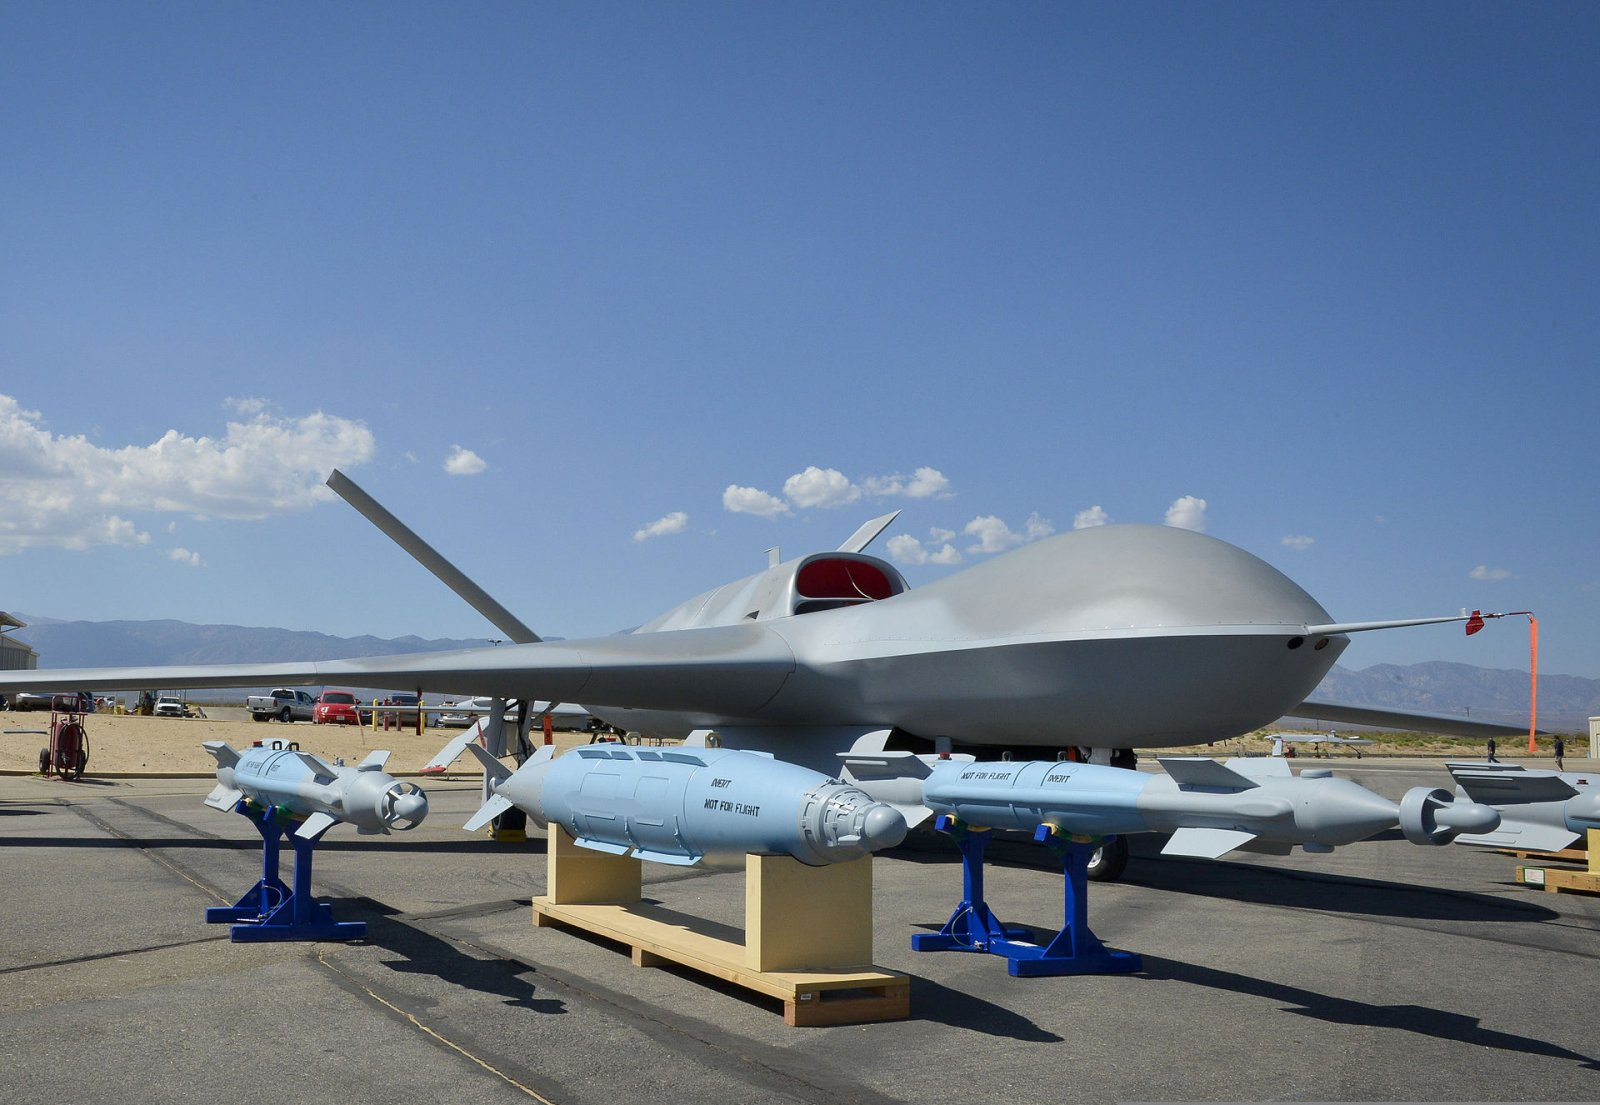 1920px-A_Predator_C_Avenger_unmanned_aircraft_system_and_inert_ordnance_sit_on_display_on_a_ta...jpg